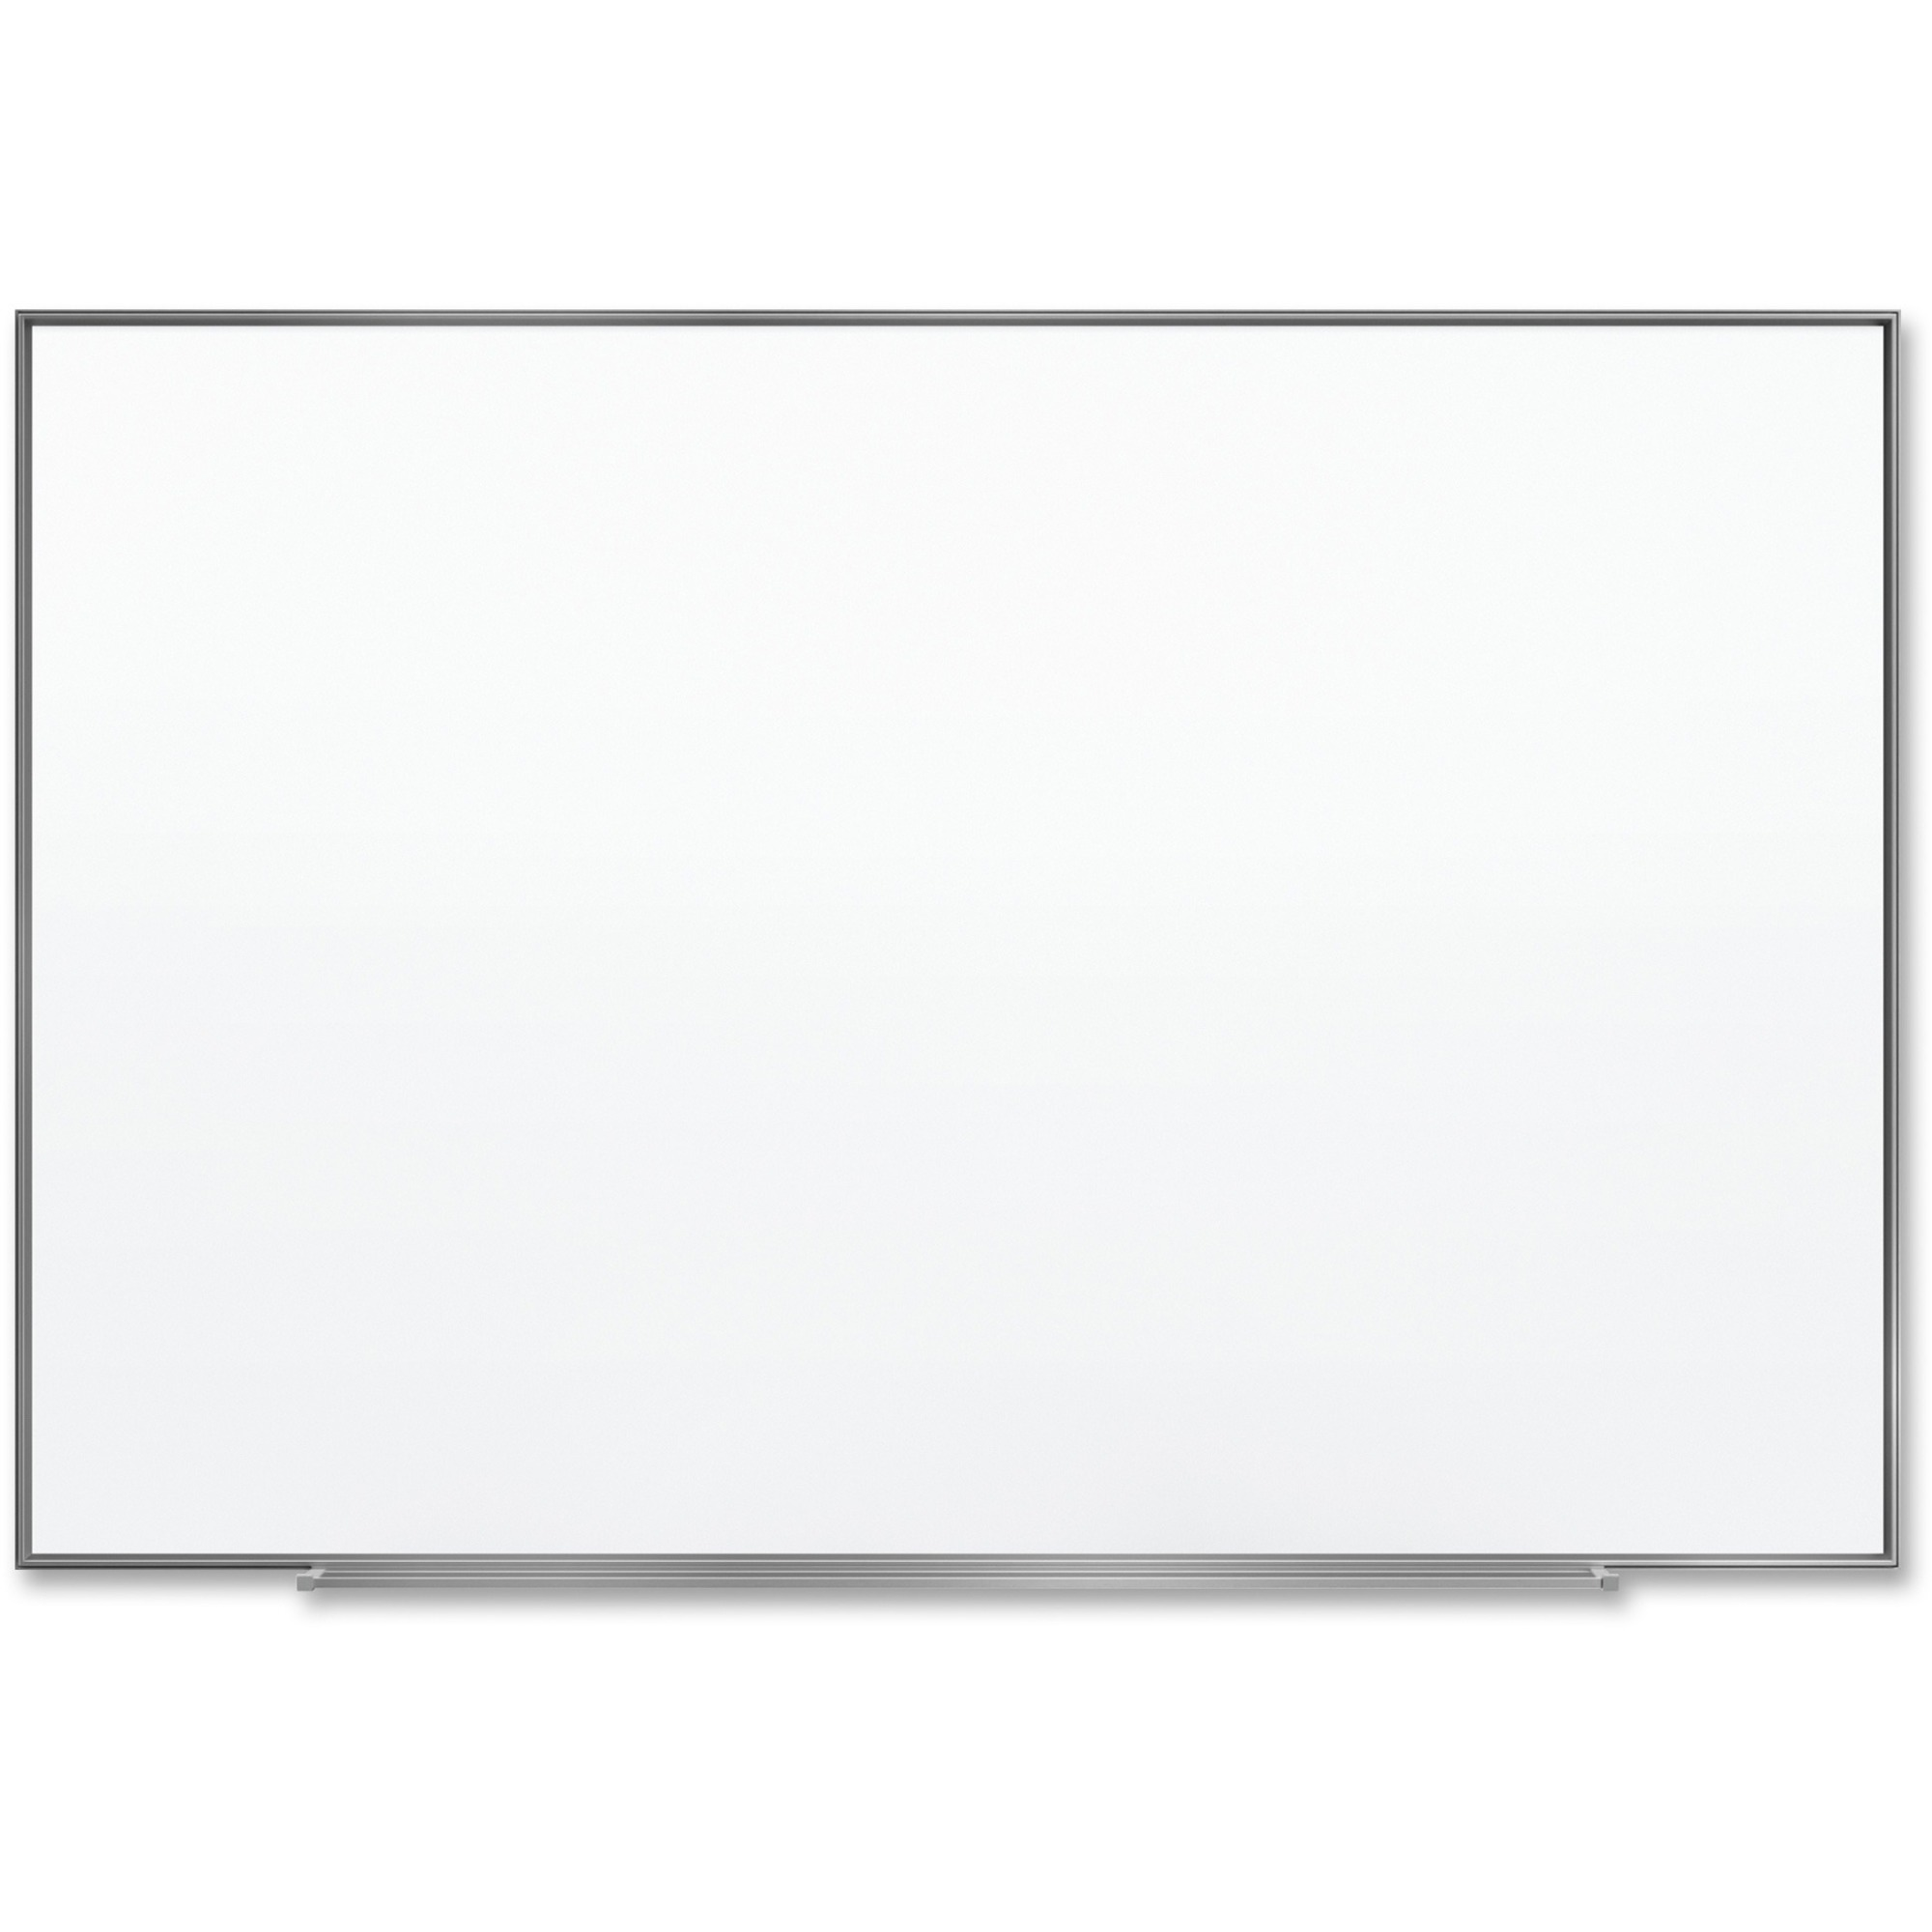 Acco Brands Corporation Quartet® Fusion Nano-clean Magnetic Whiteboard - 36 (3 Ft) Width X 24 (2 Ft) Height - White Surface - Silver Aluminum Frame - Horizontal/vertical - 1 Each